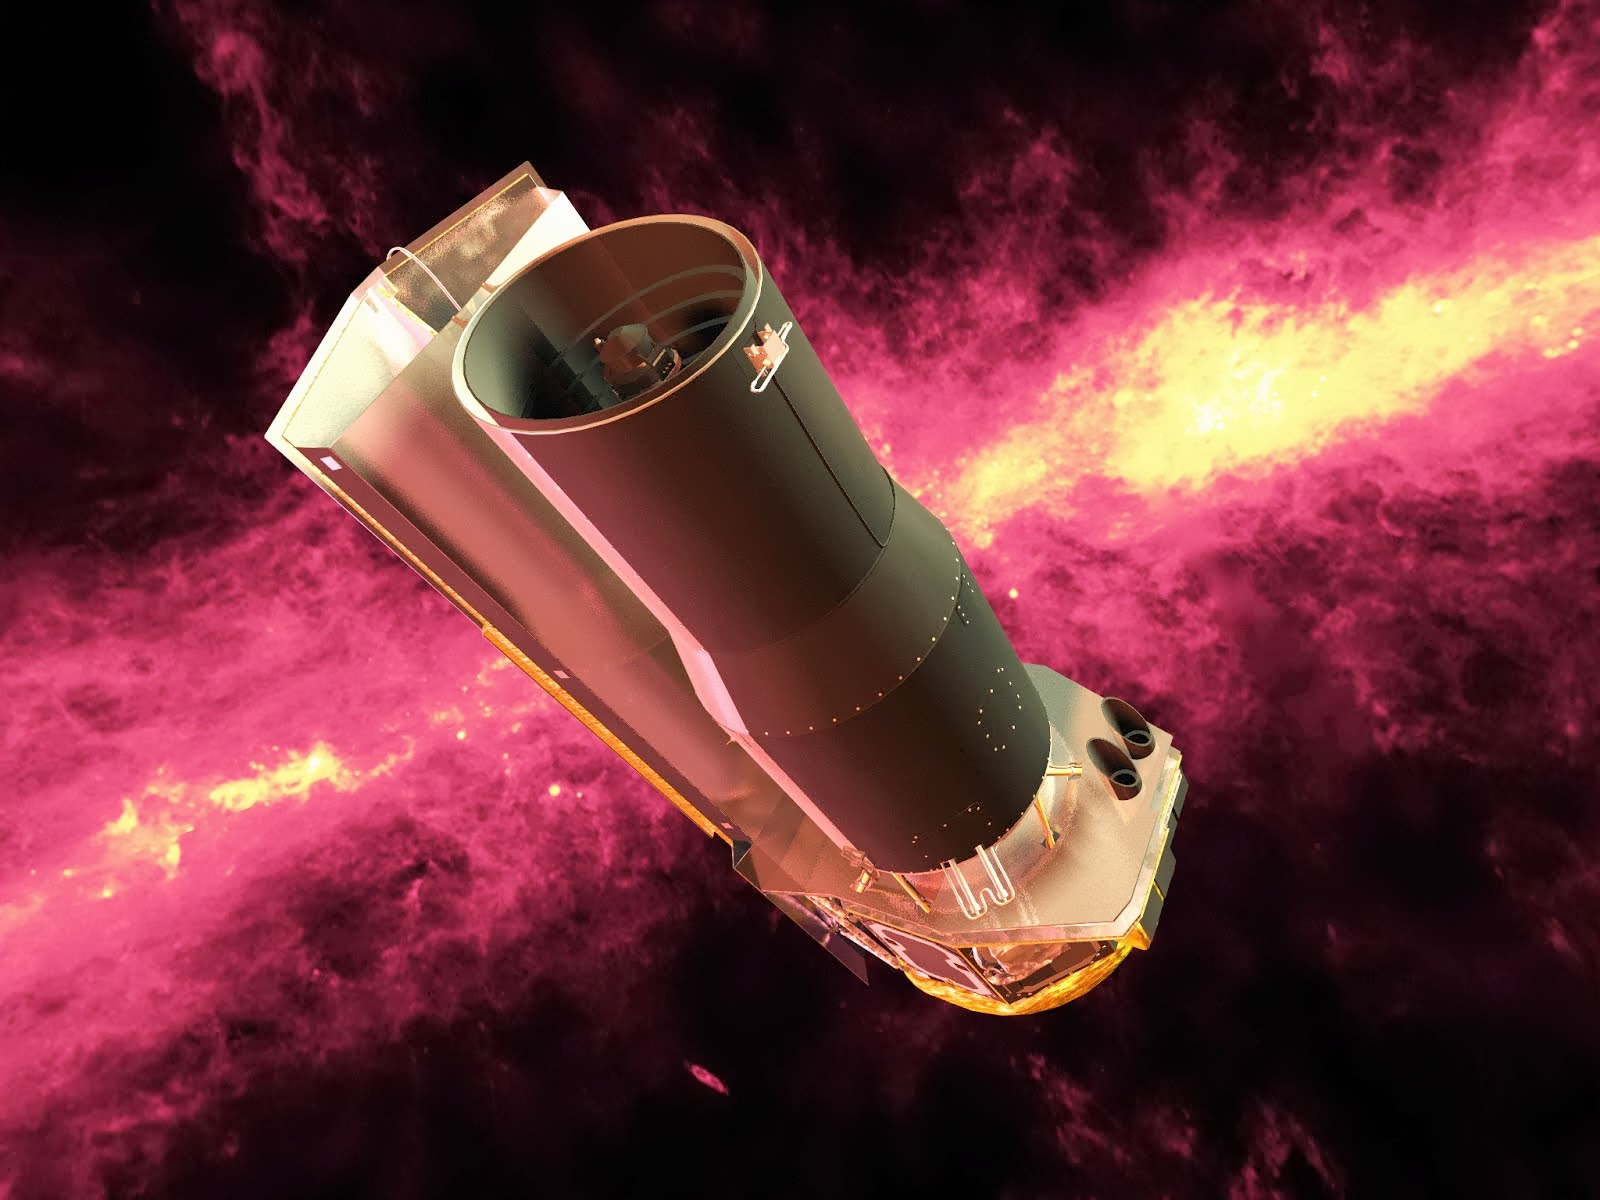 Spitzer space telescope images space wallpaper - Spitzer space telescope wallpaper ...